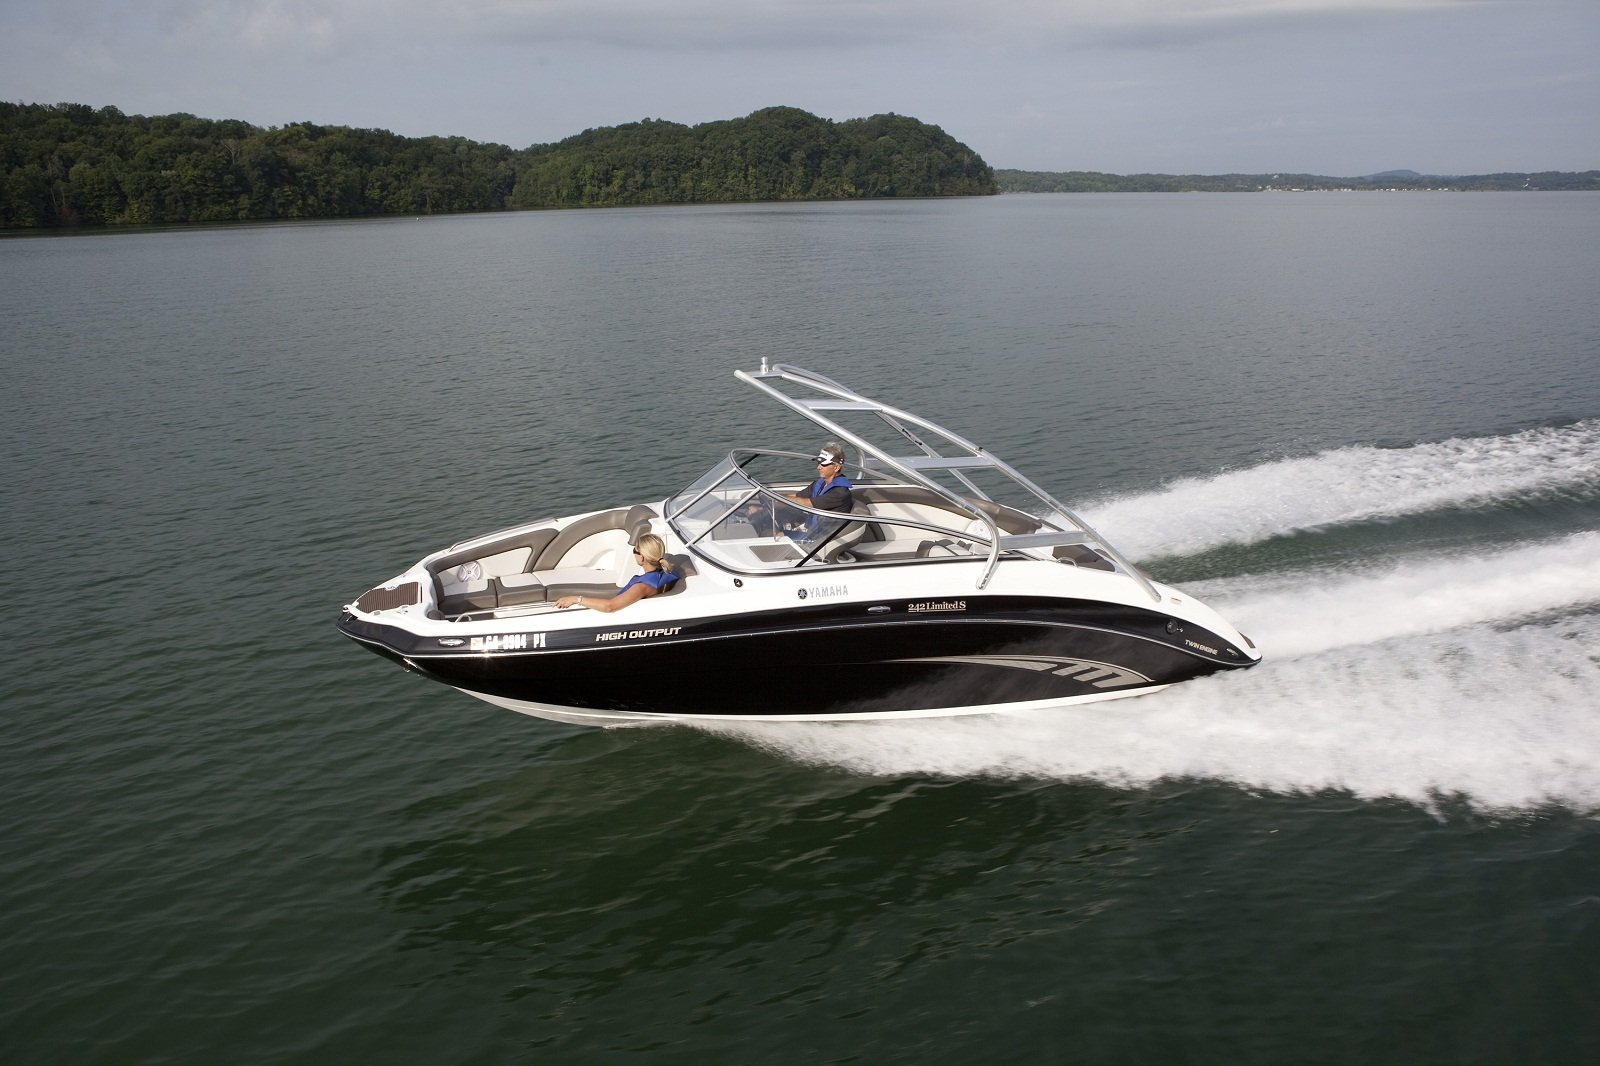 2011 yamaha 242 limited s picture 420804 boat review